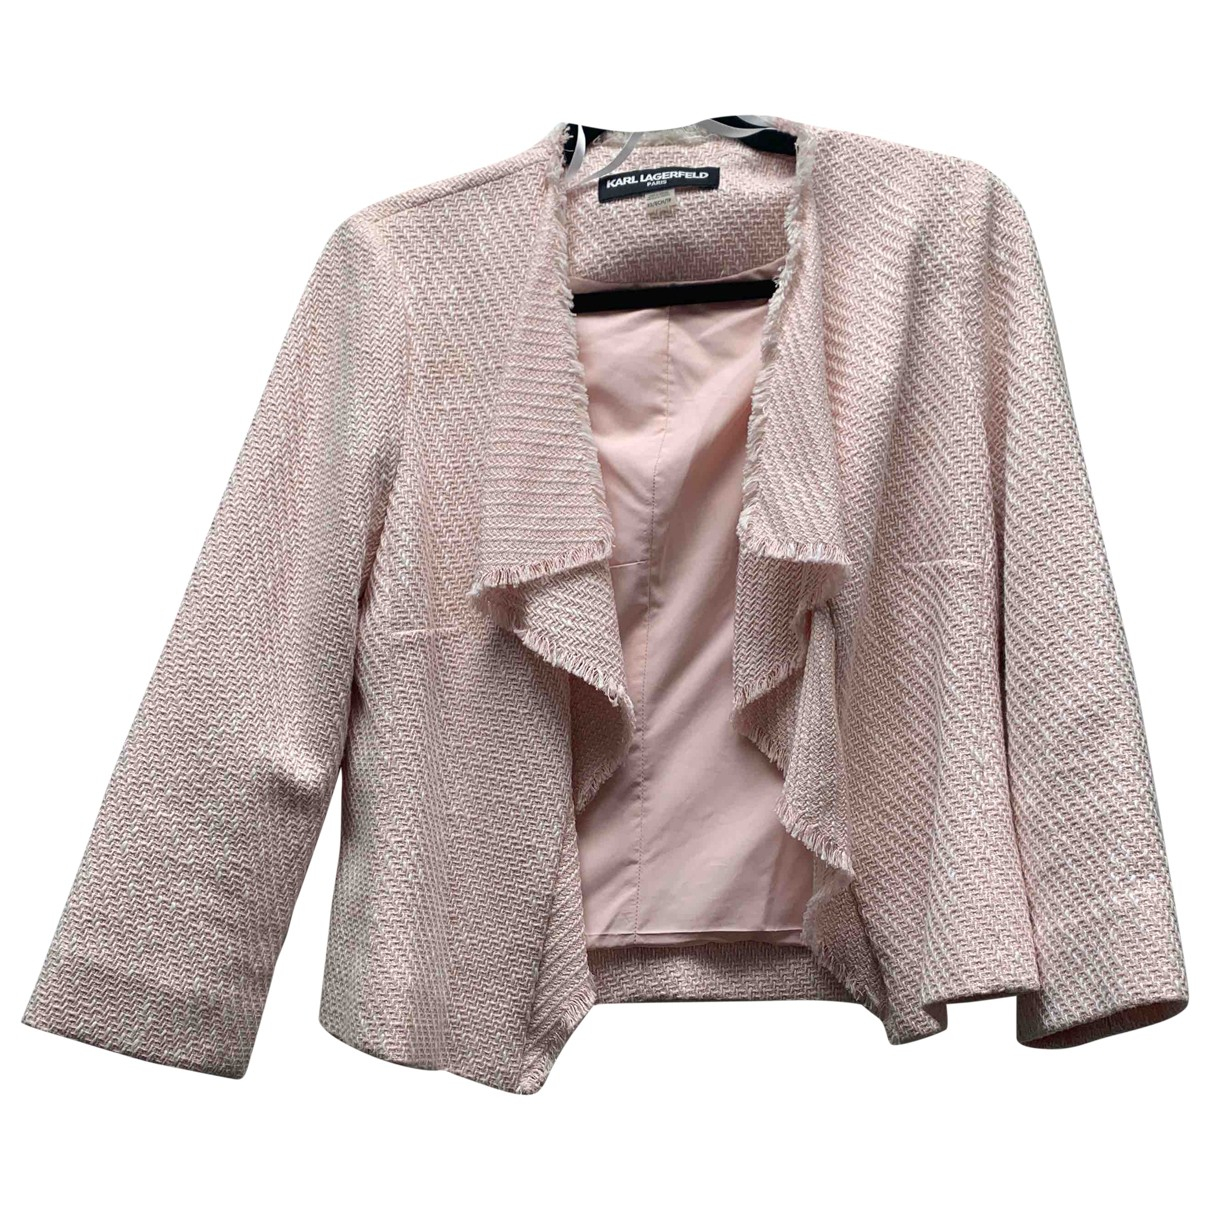 Karl Lagerfeld \N Pink Cotton jacket for Women XS International